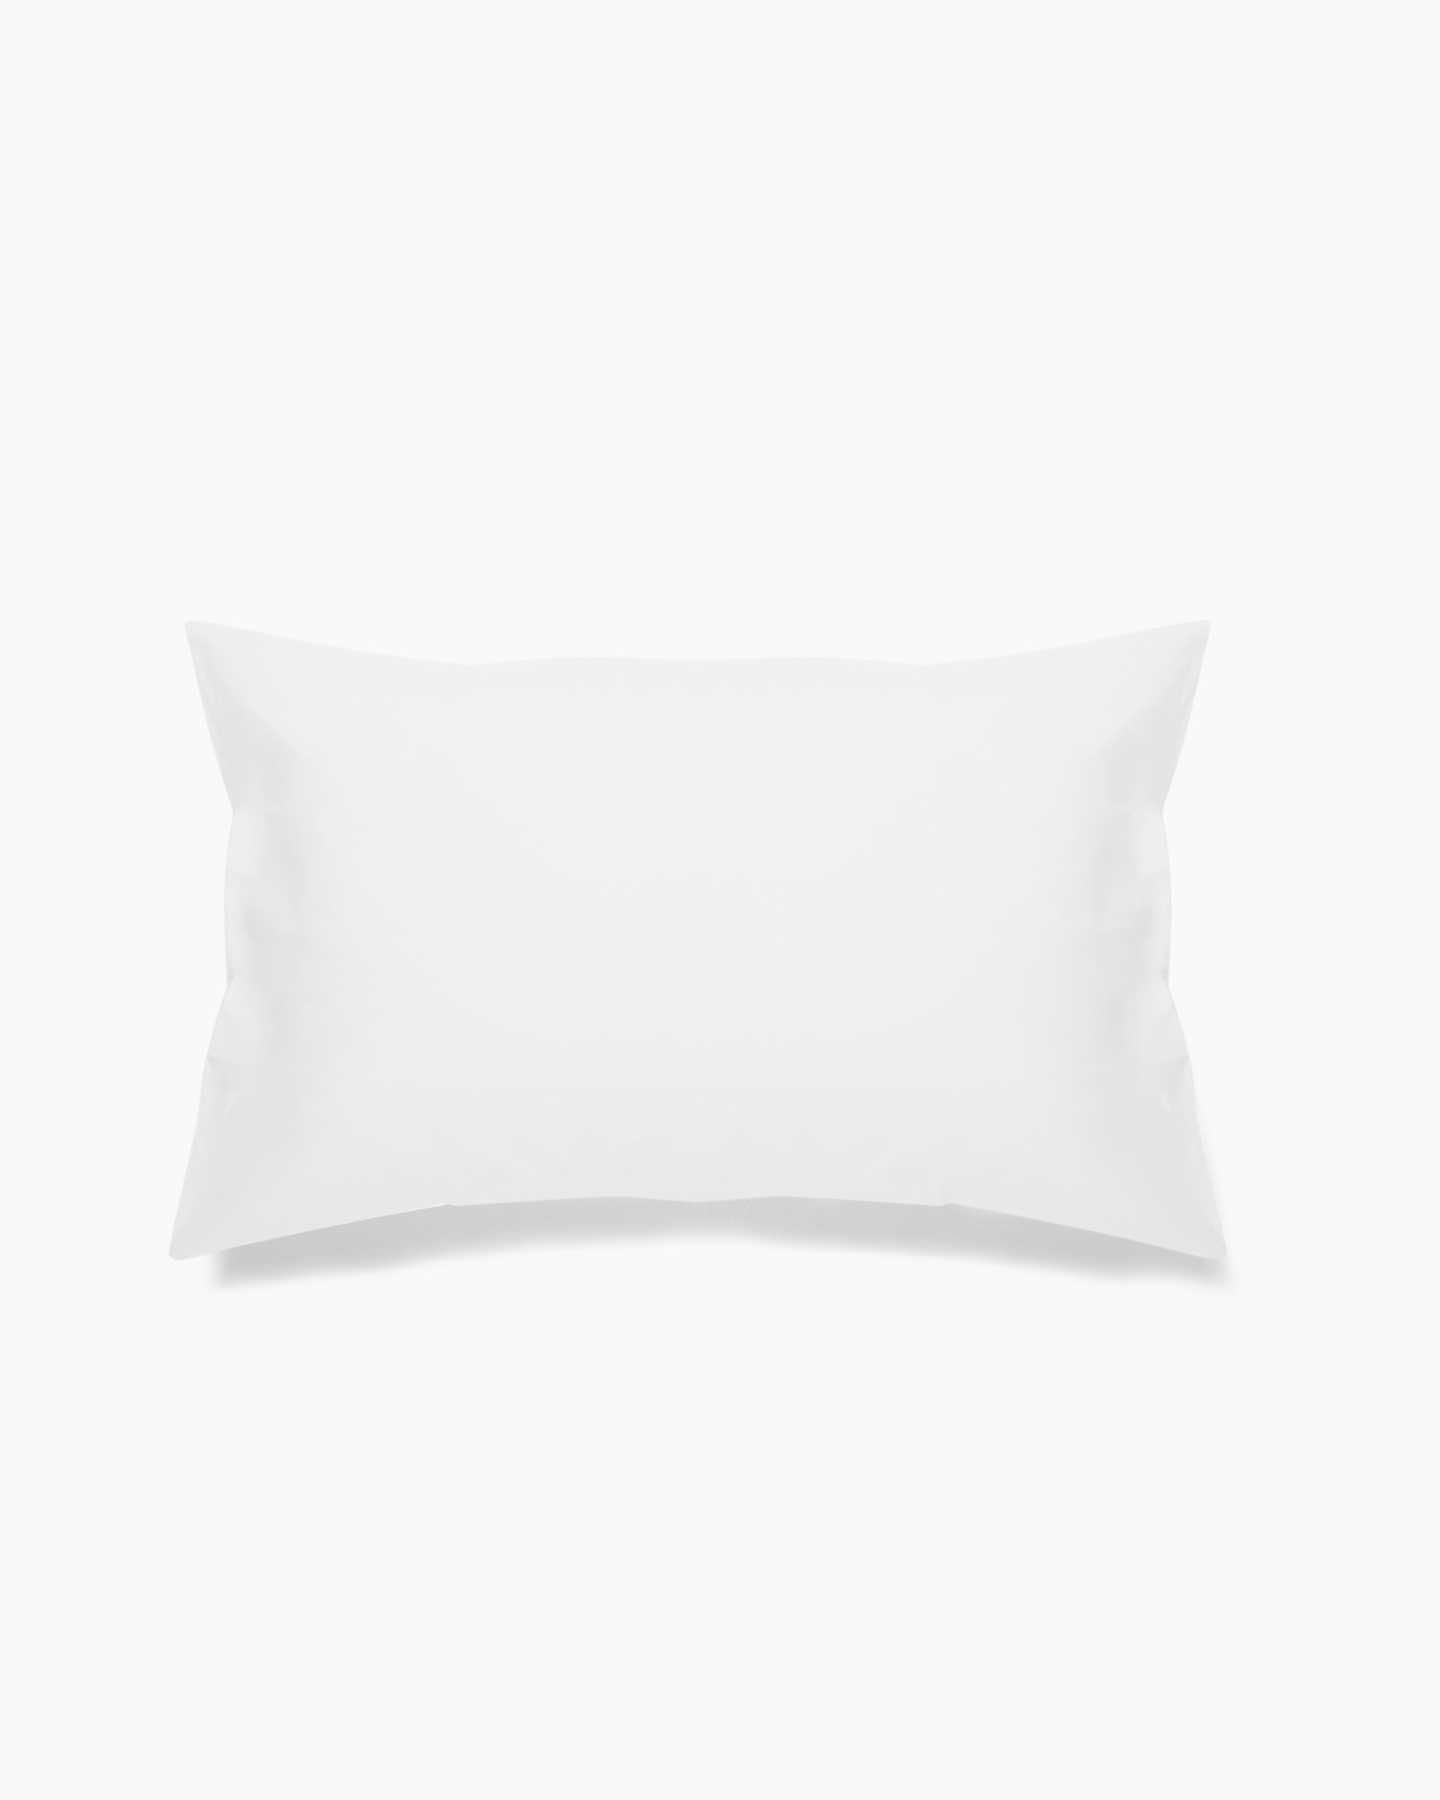 Pair With - Organic Percale Luxe Pillowcases - White